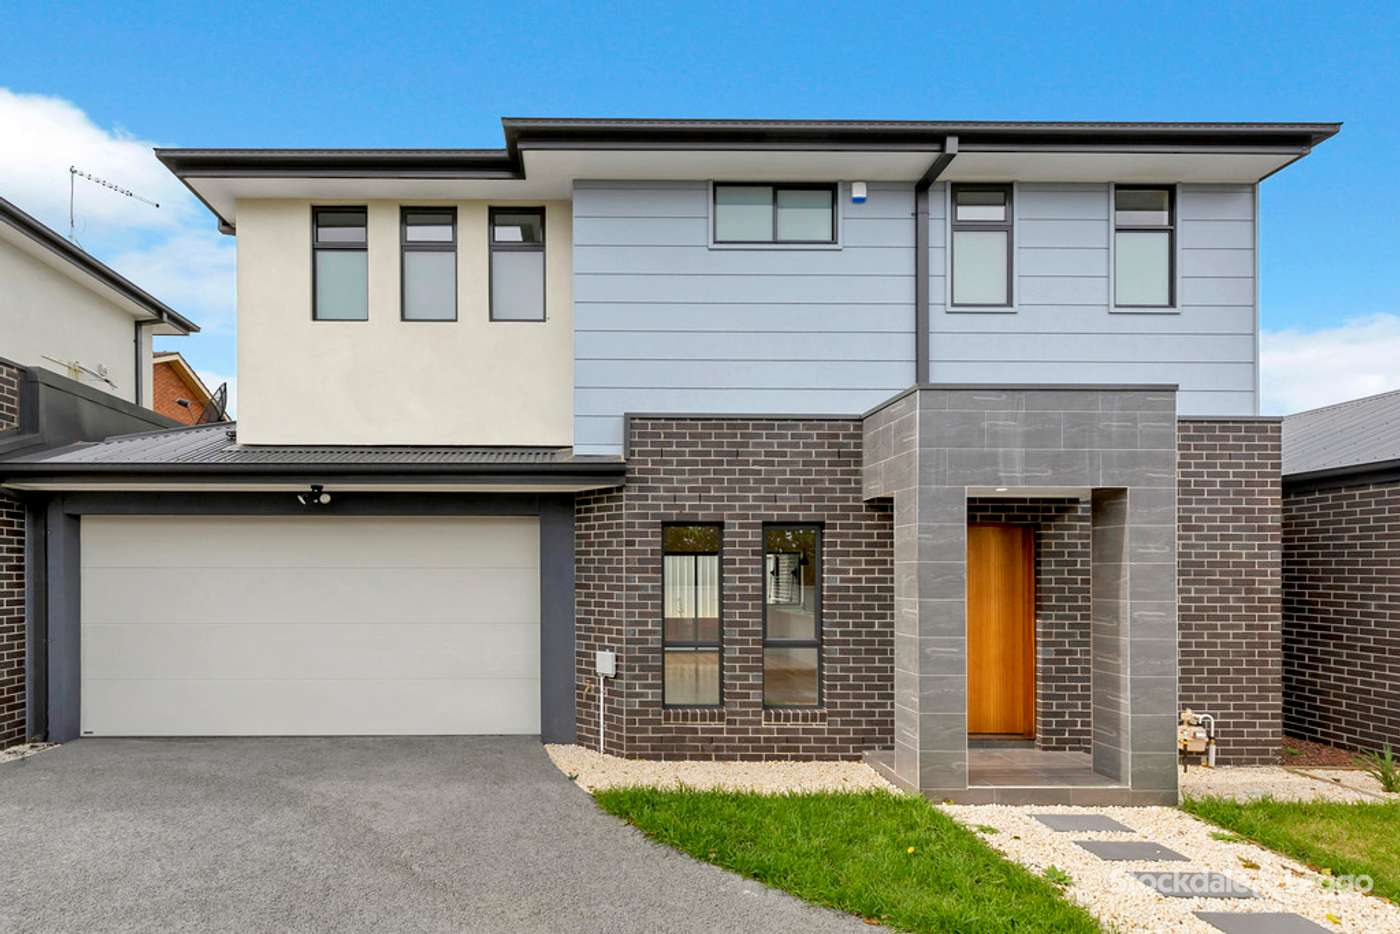 Main view of Homely townhouse listing, 3/9 Prospect Street, Glenroy VIC 3046